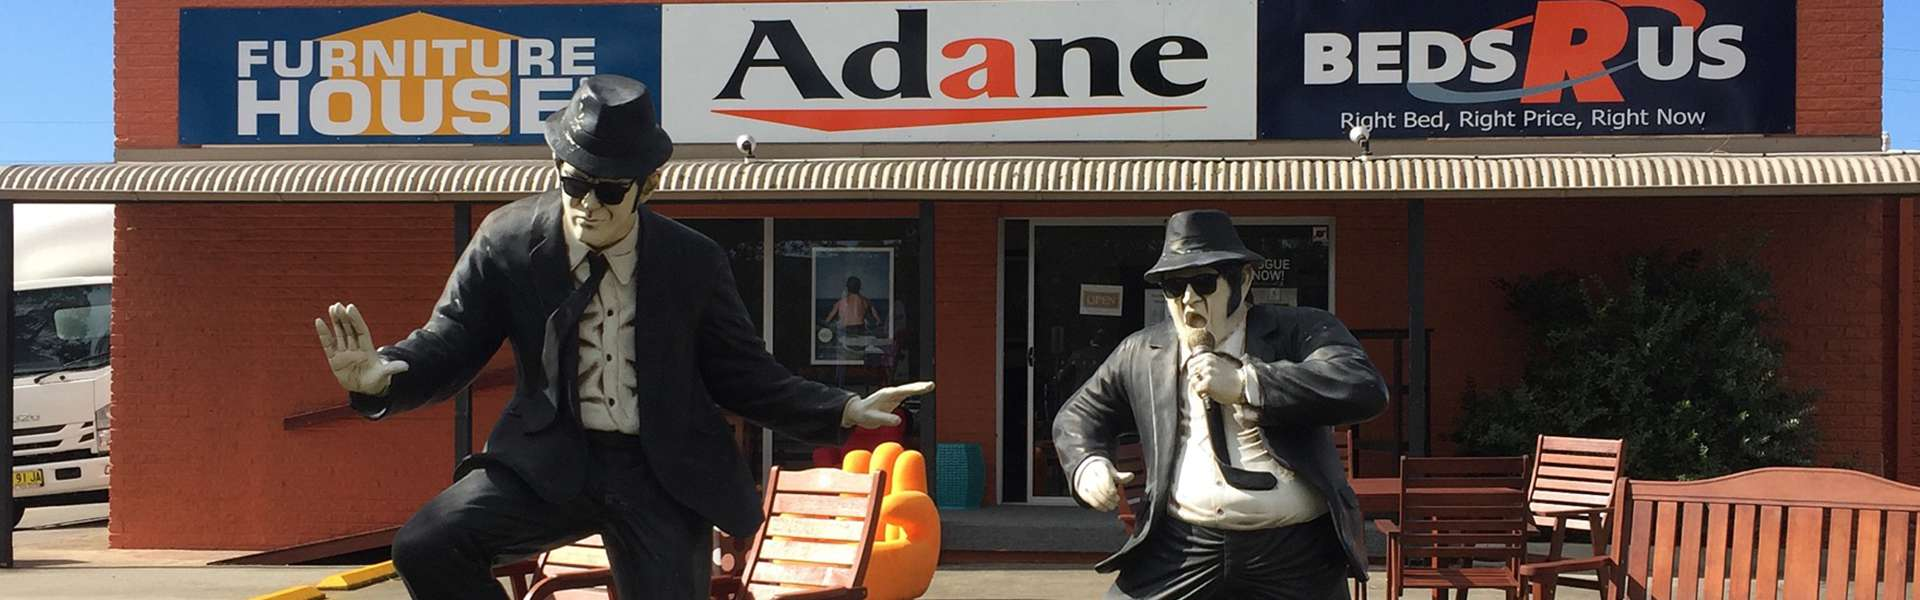 Adane Furniture South Nowra